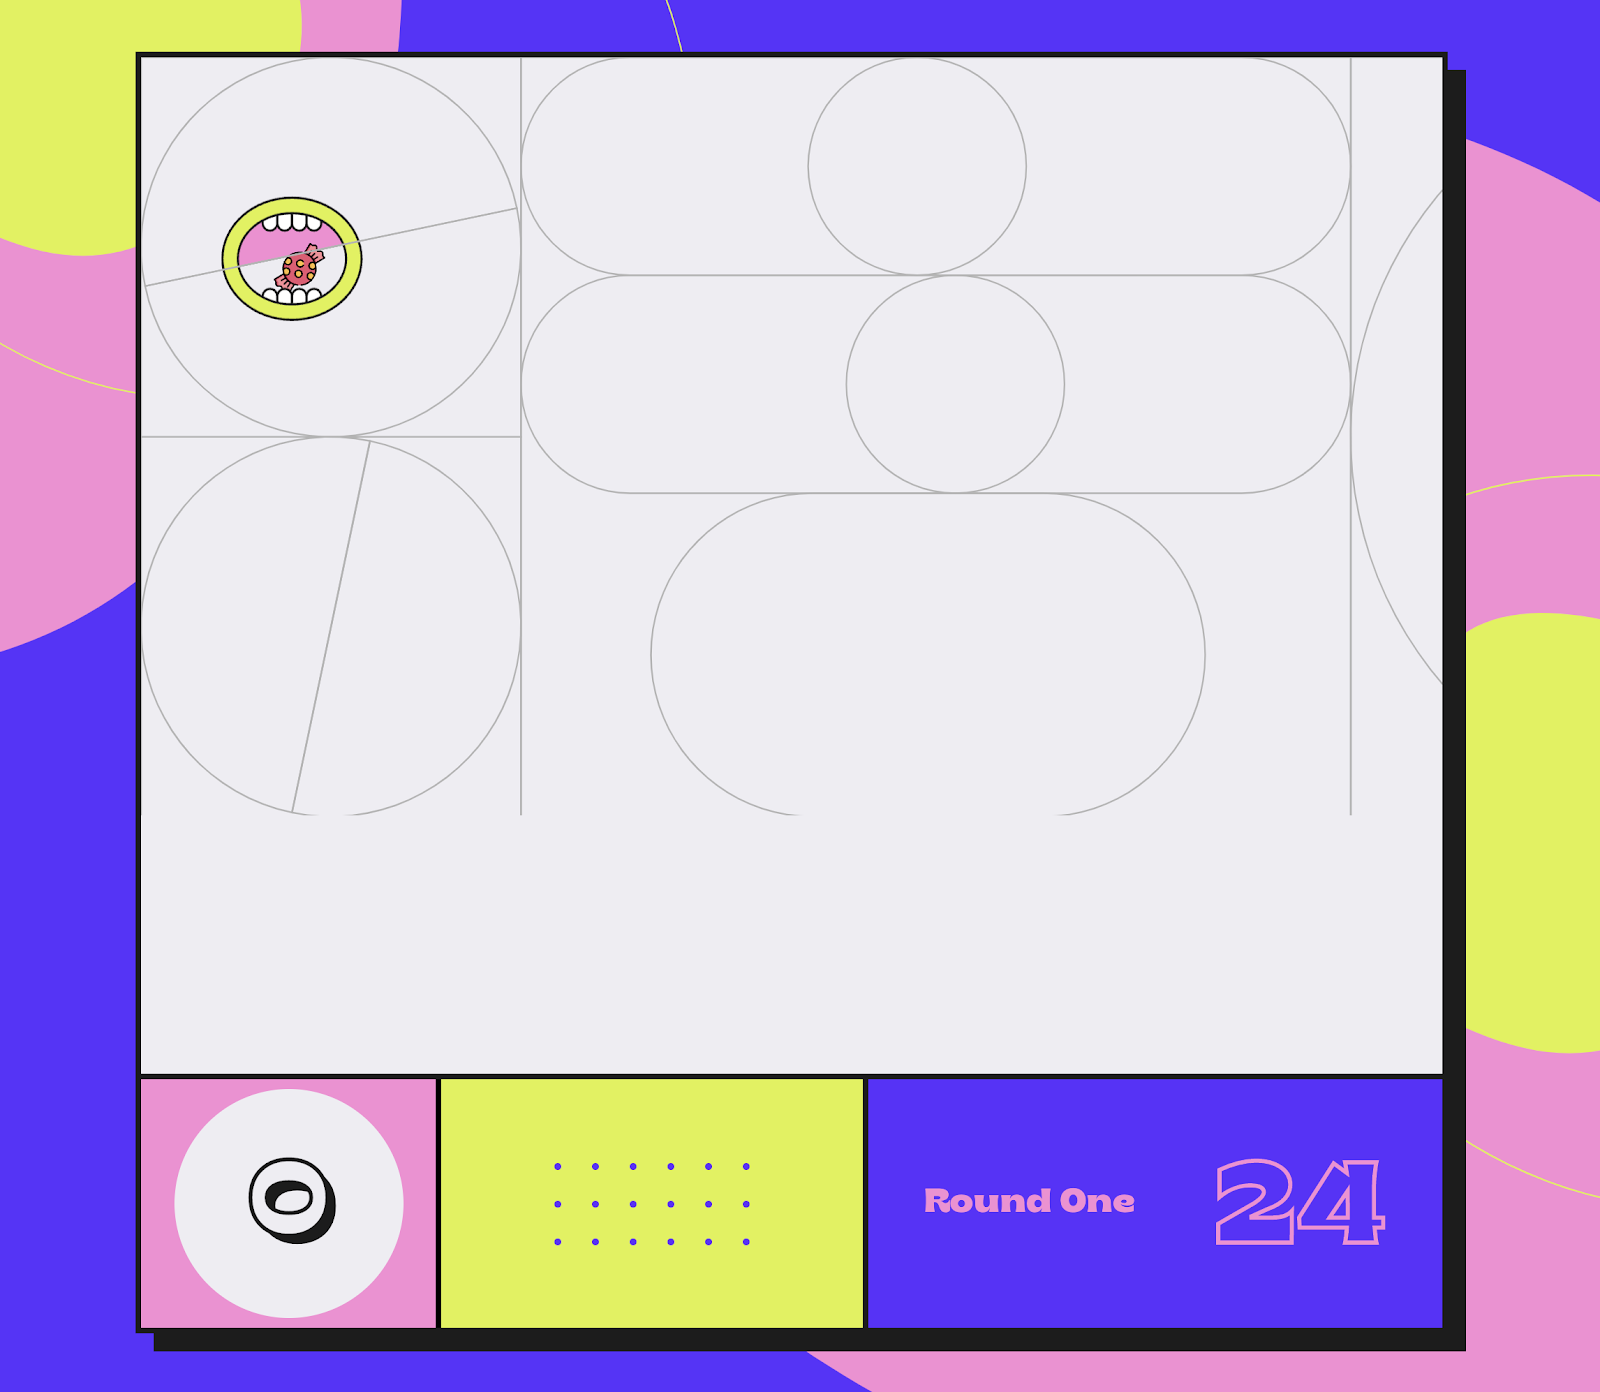 Screenshot from the Tricks Game project.